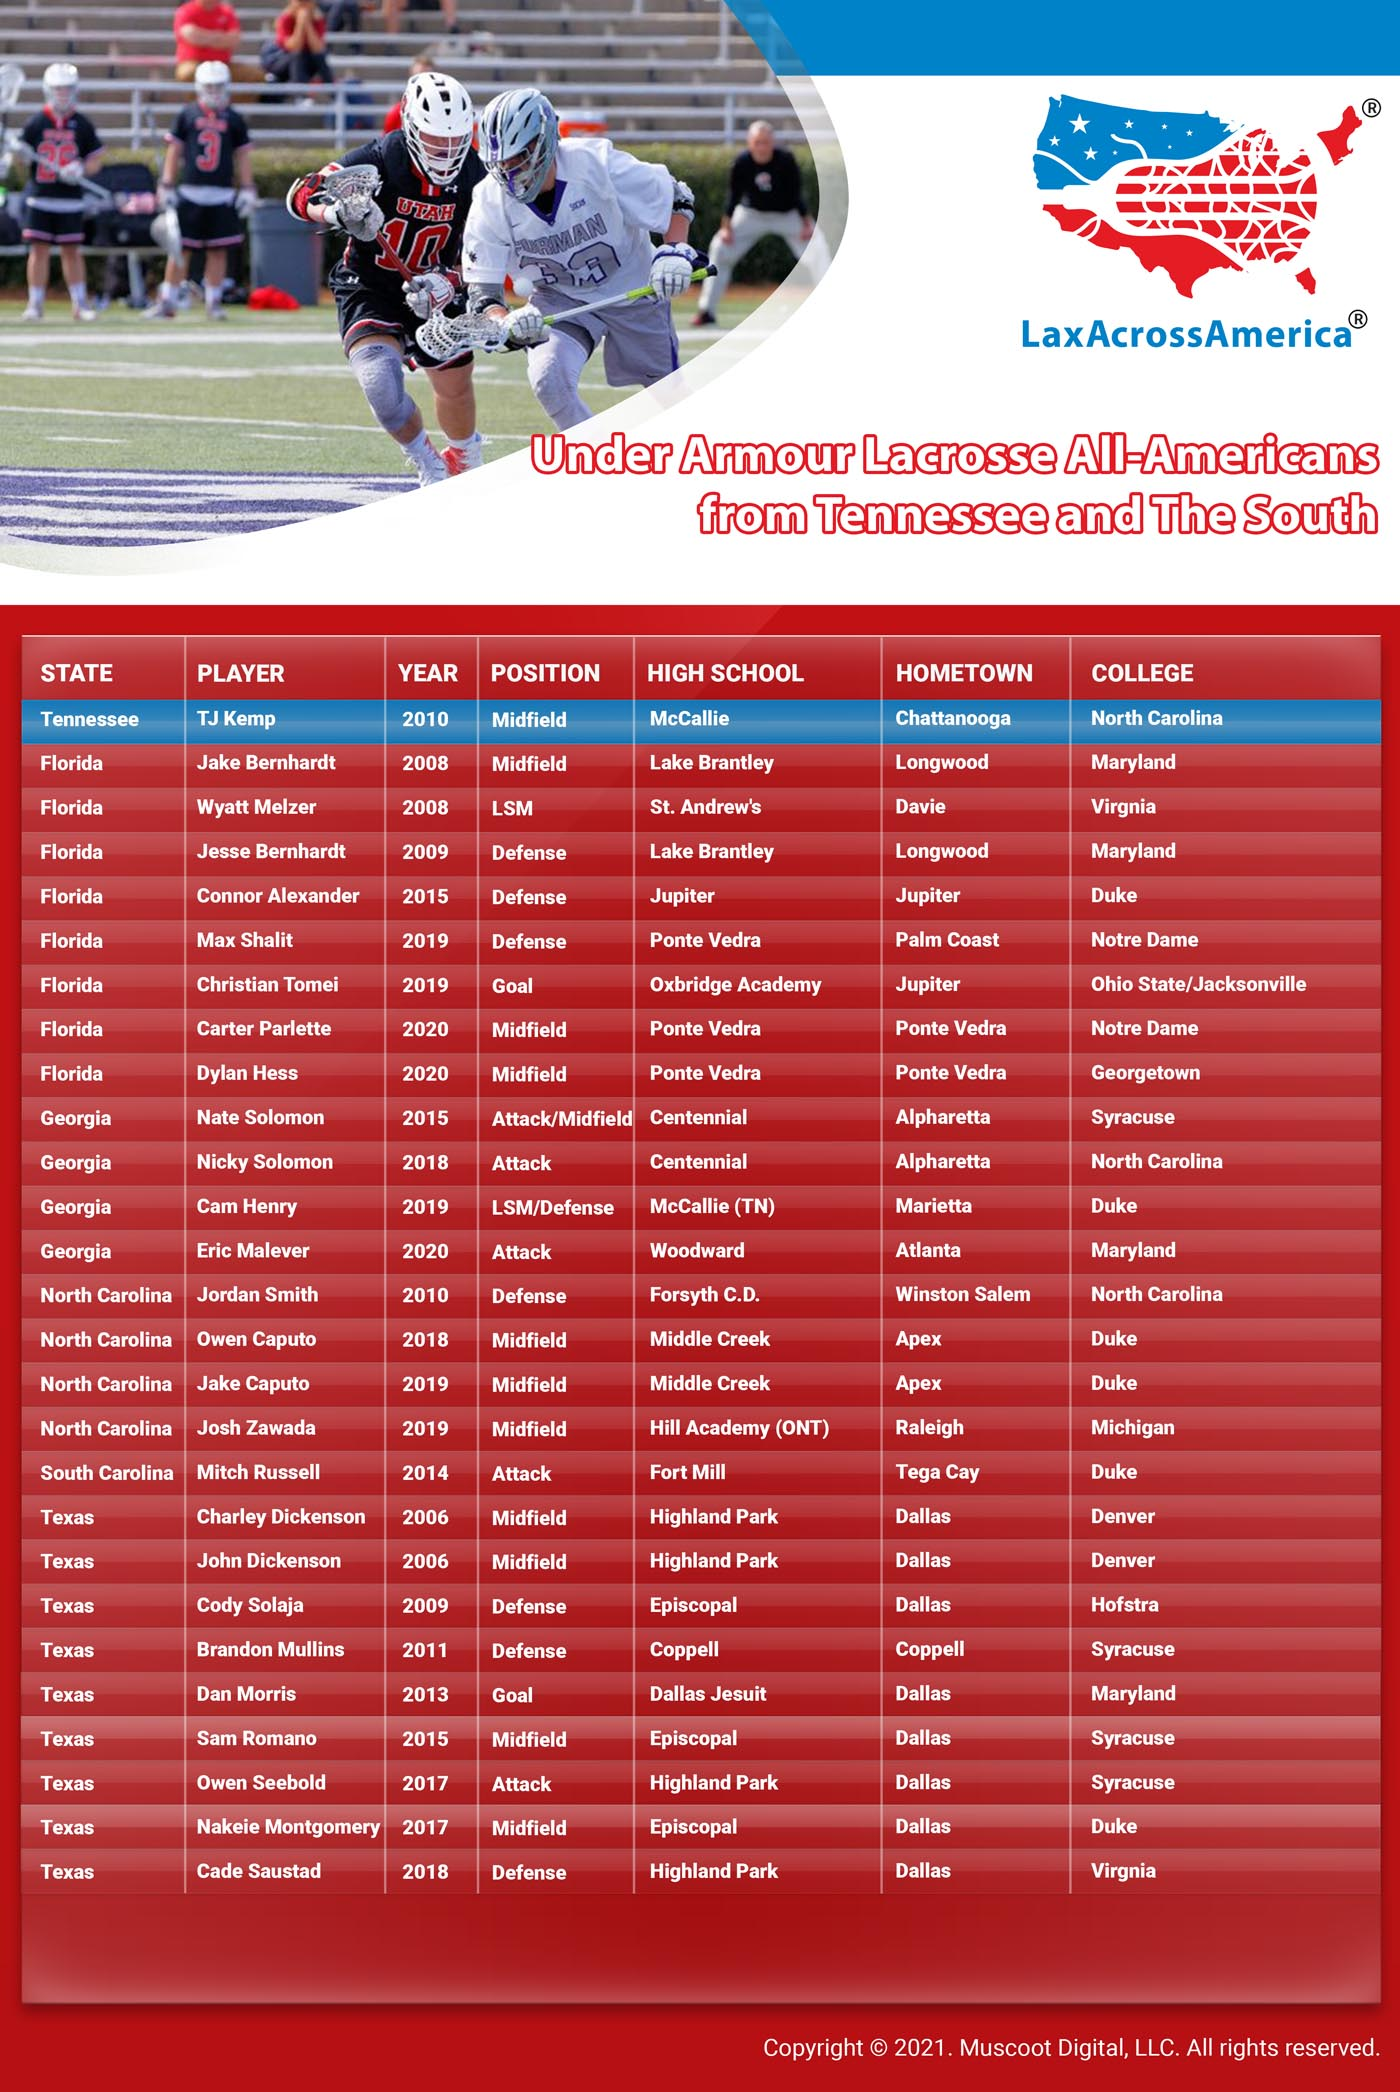 Under Armour Lacrosse All-Americans from Tennessee